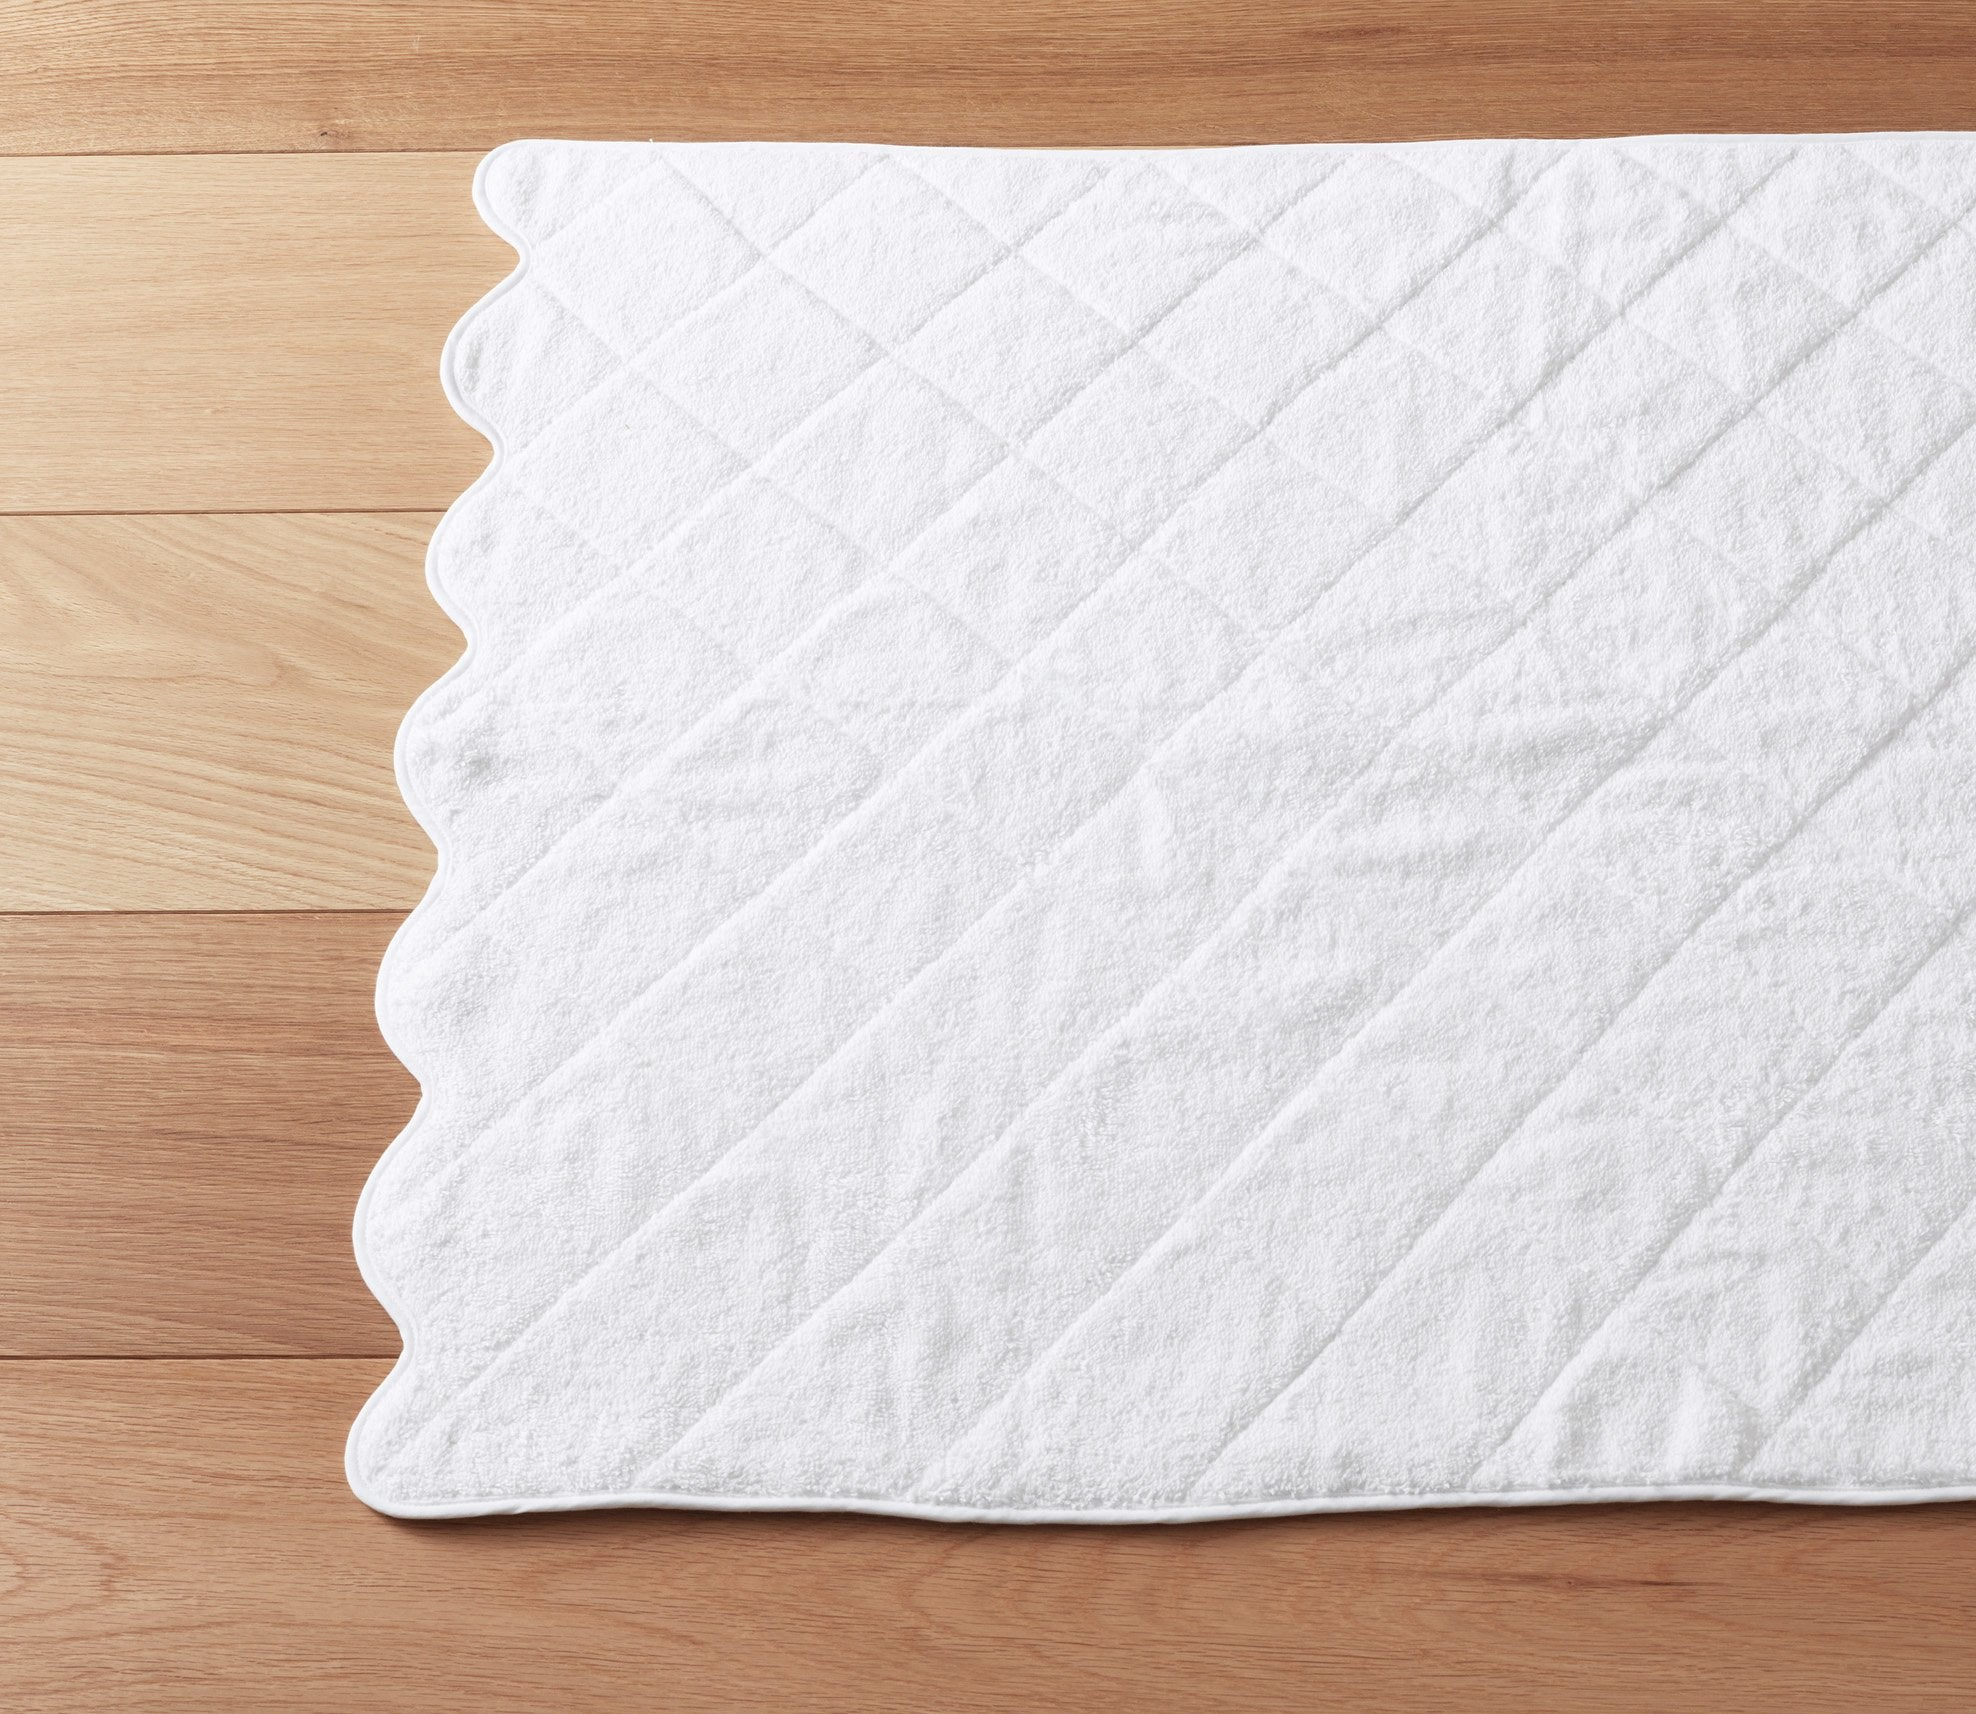 Scallop Bath Mat White Product Image 1